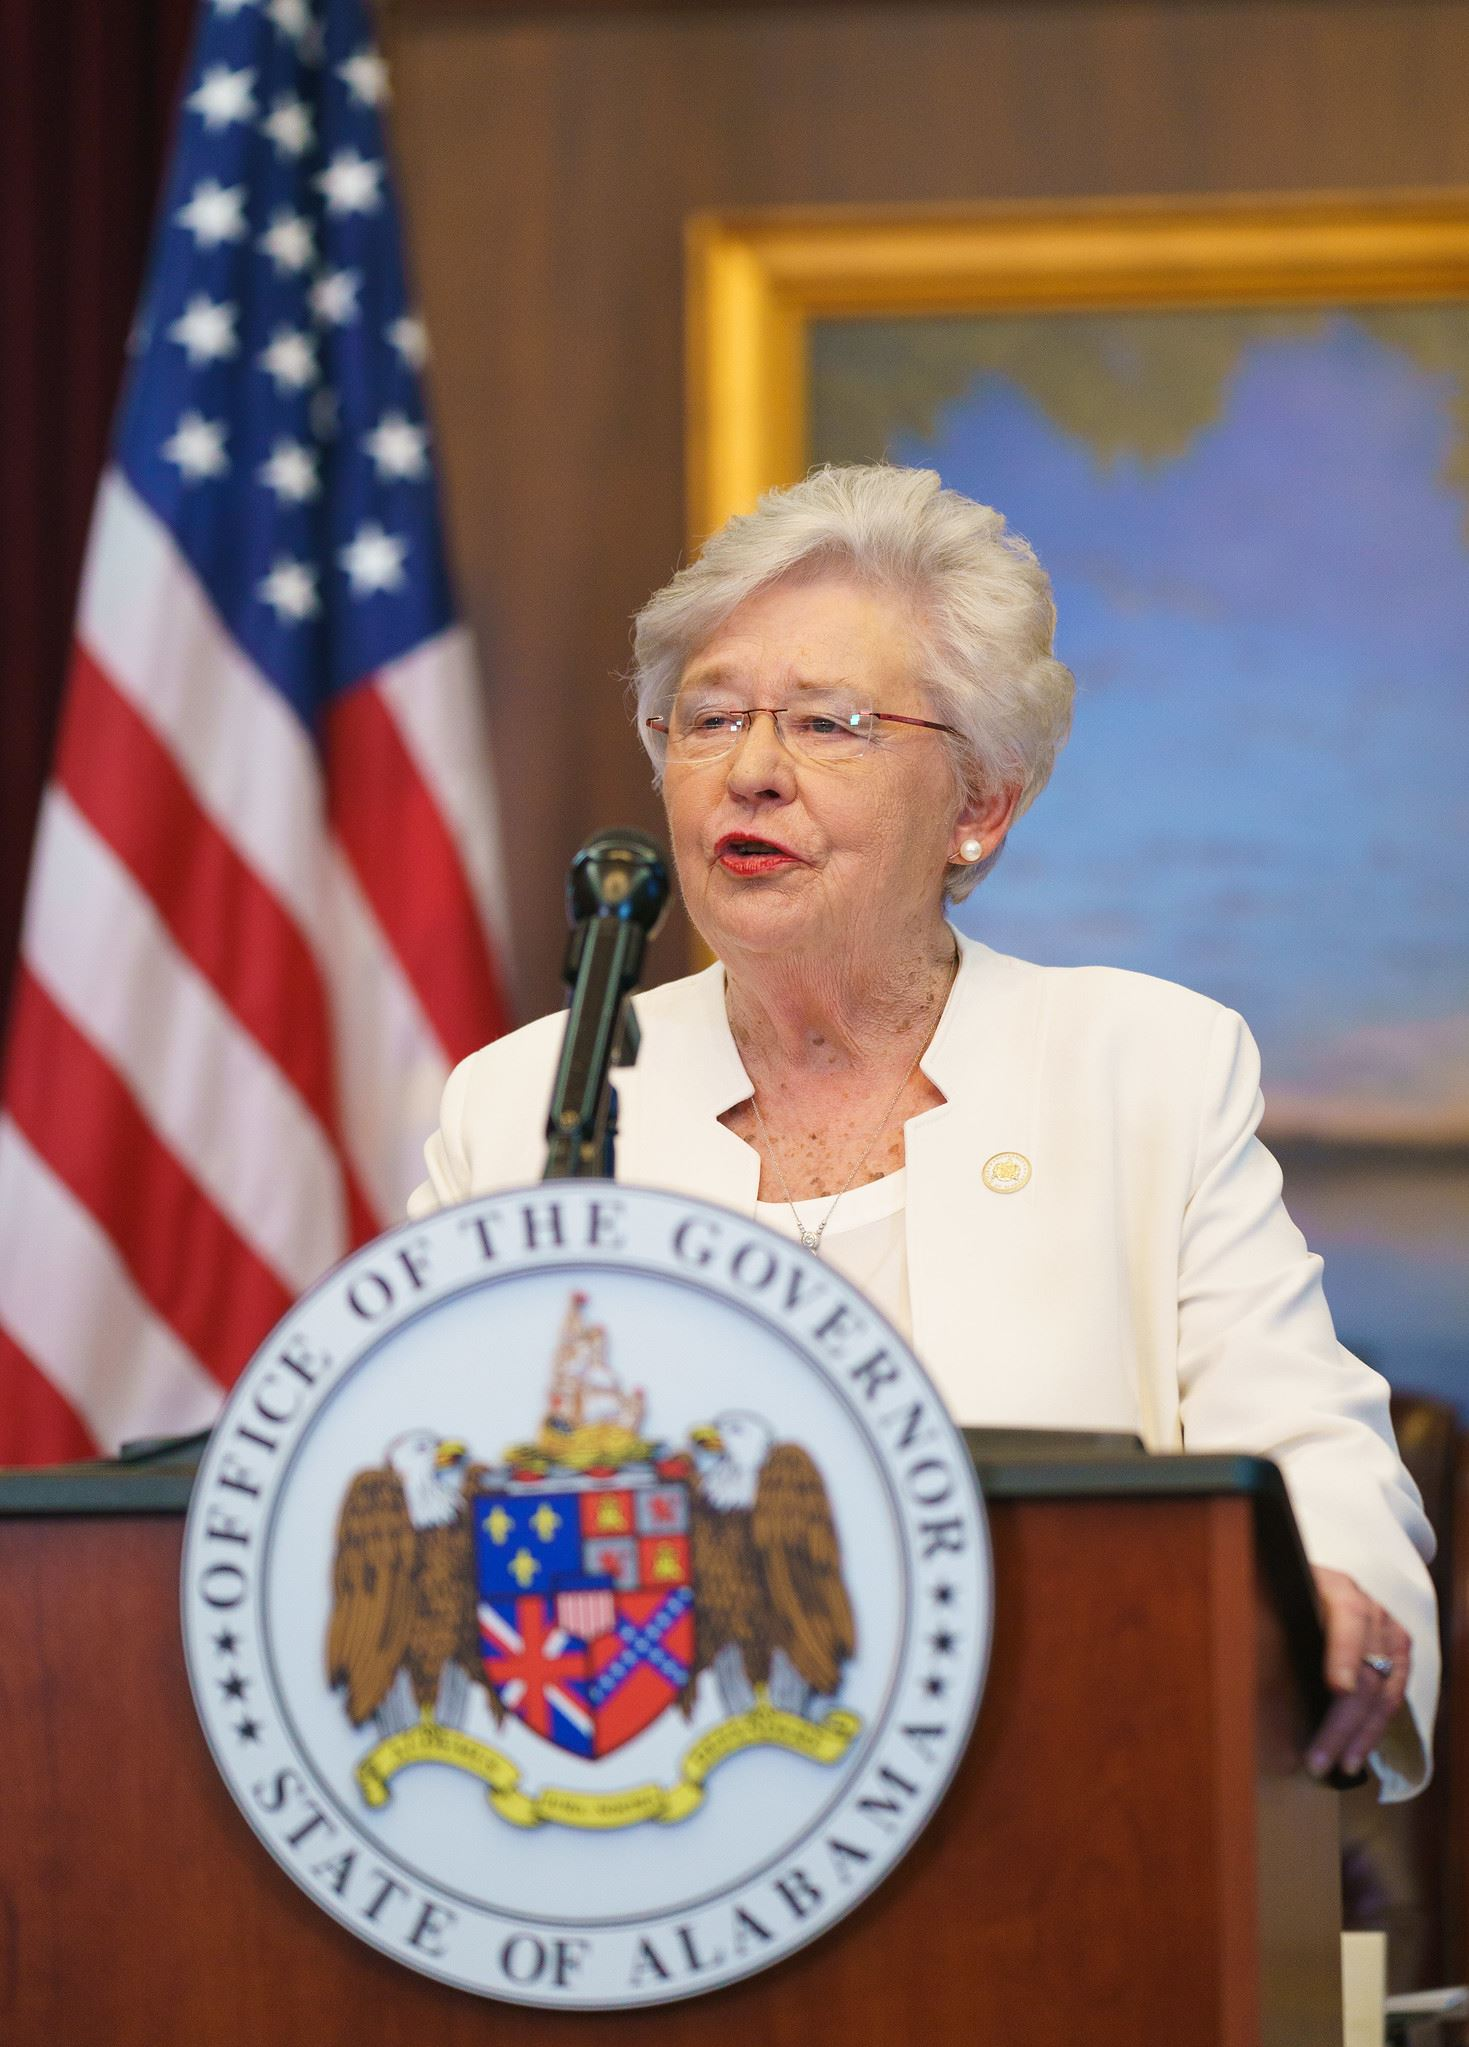 Gov Kay Ivey at lecturn